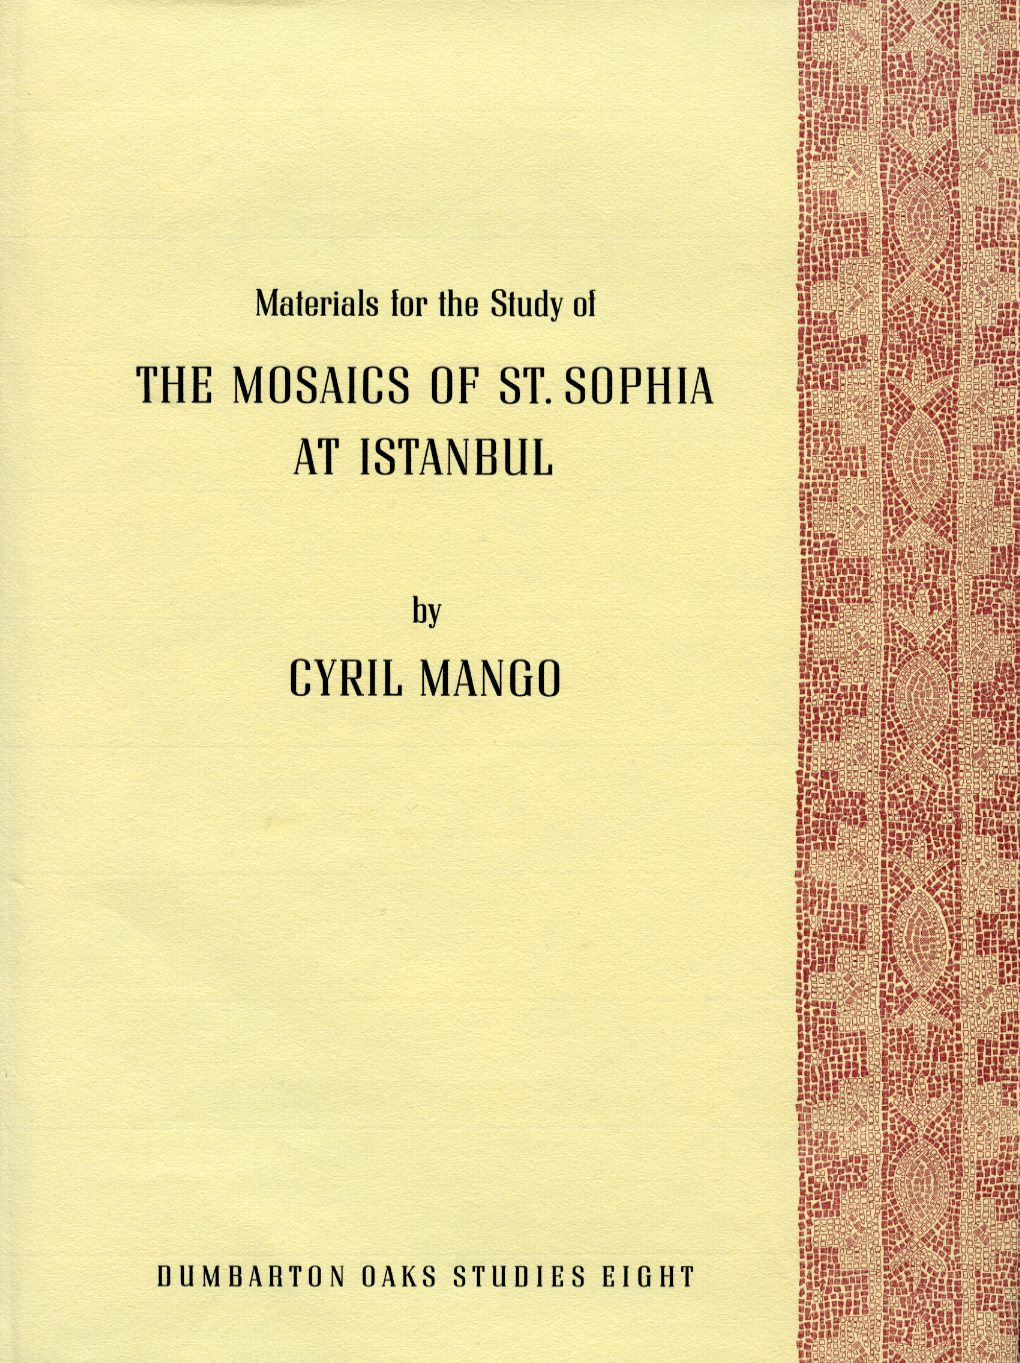 The Materials for the Study of the Mosaics of St. Sophia at Istanbul